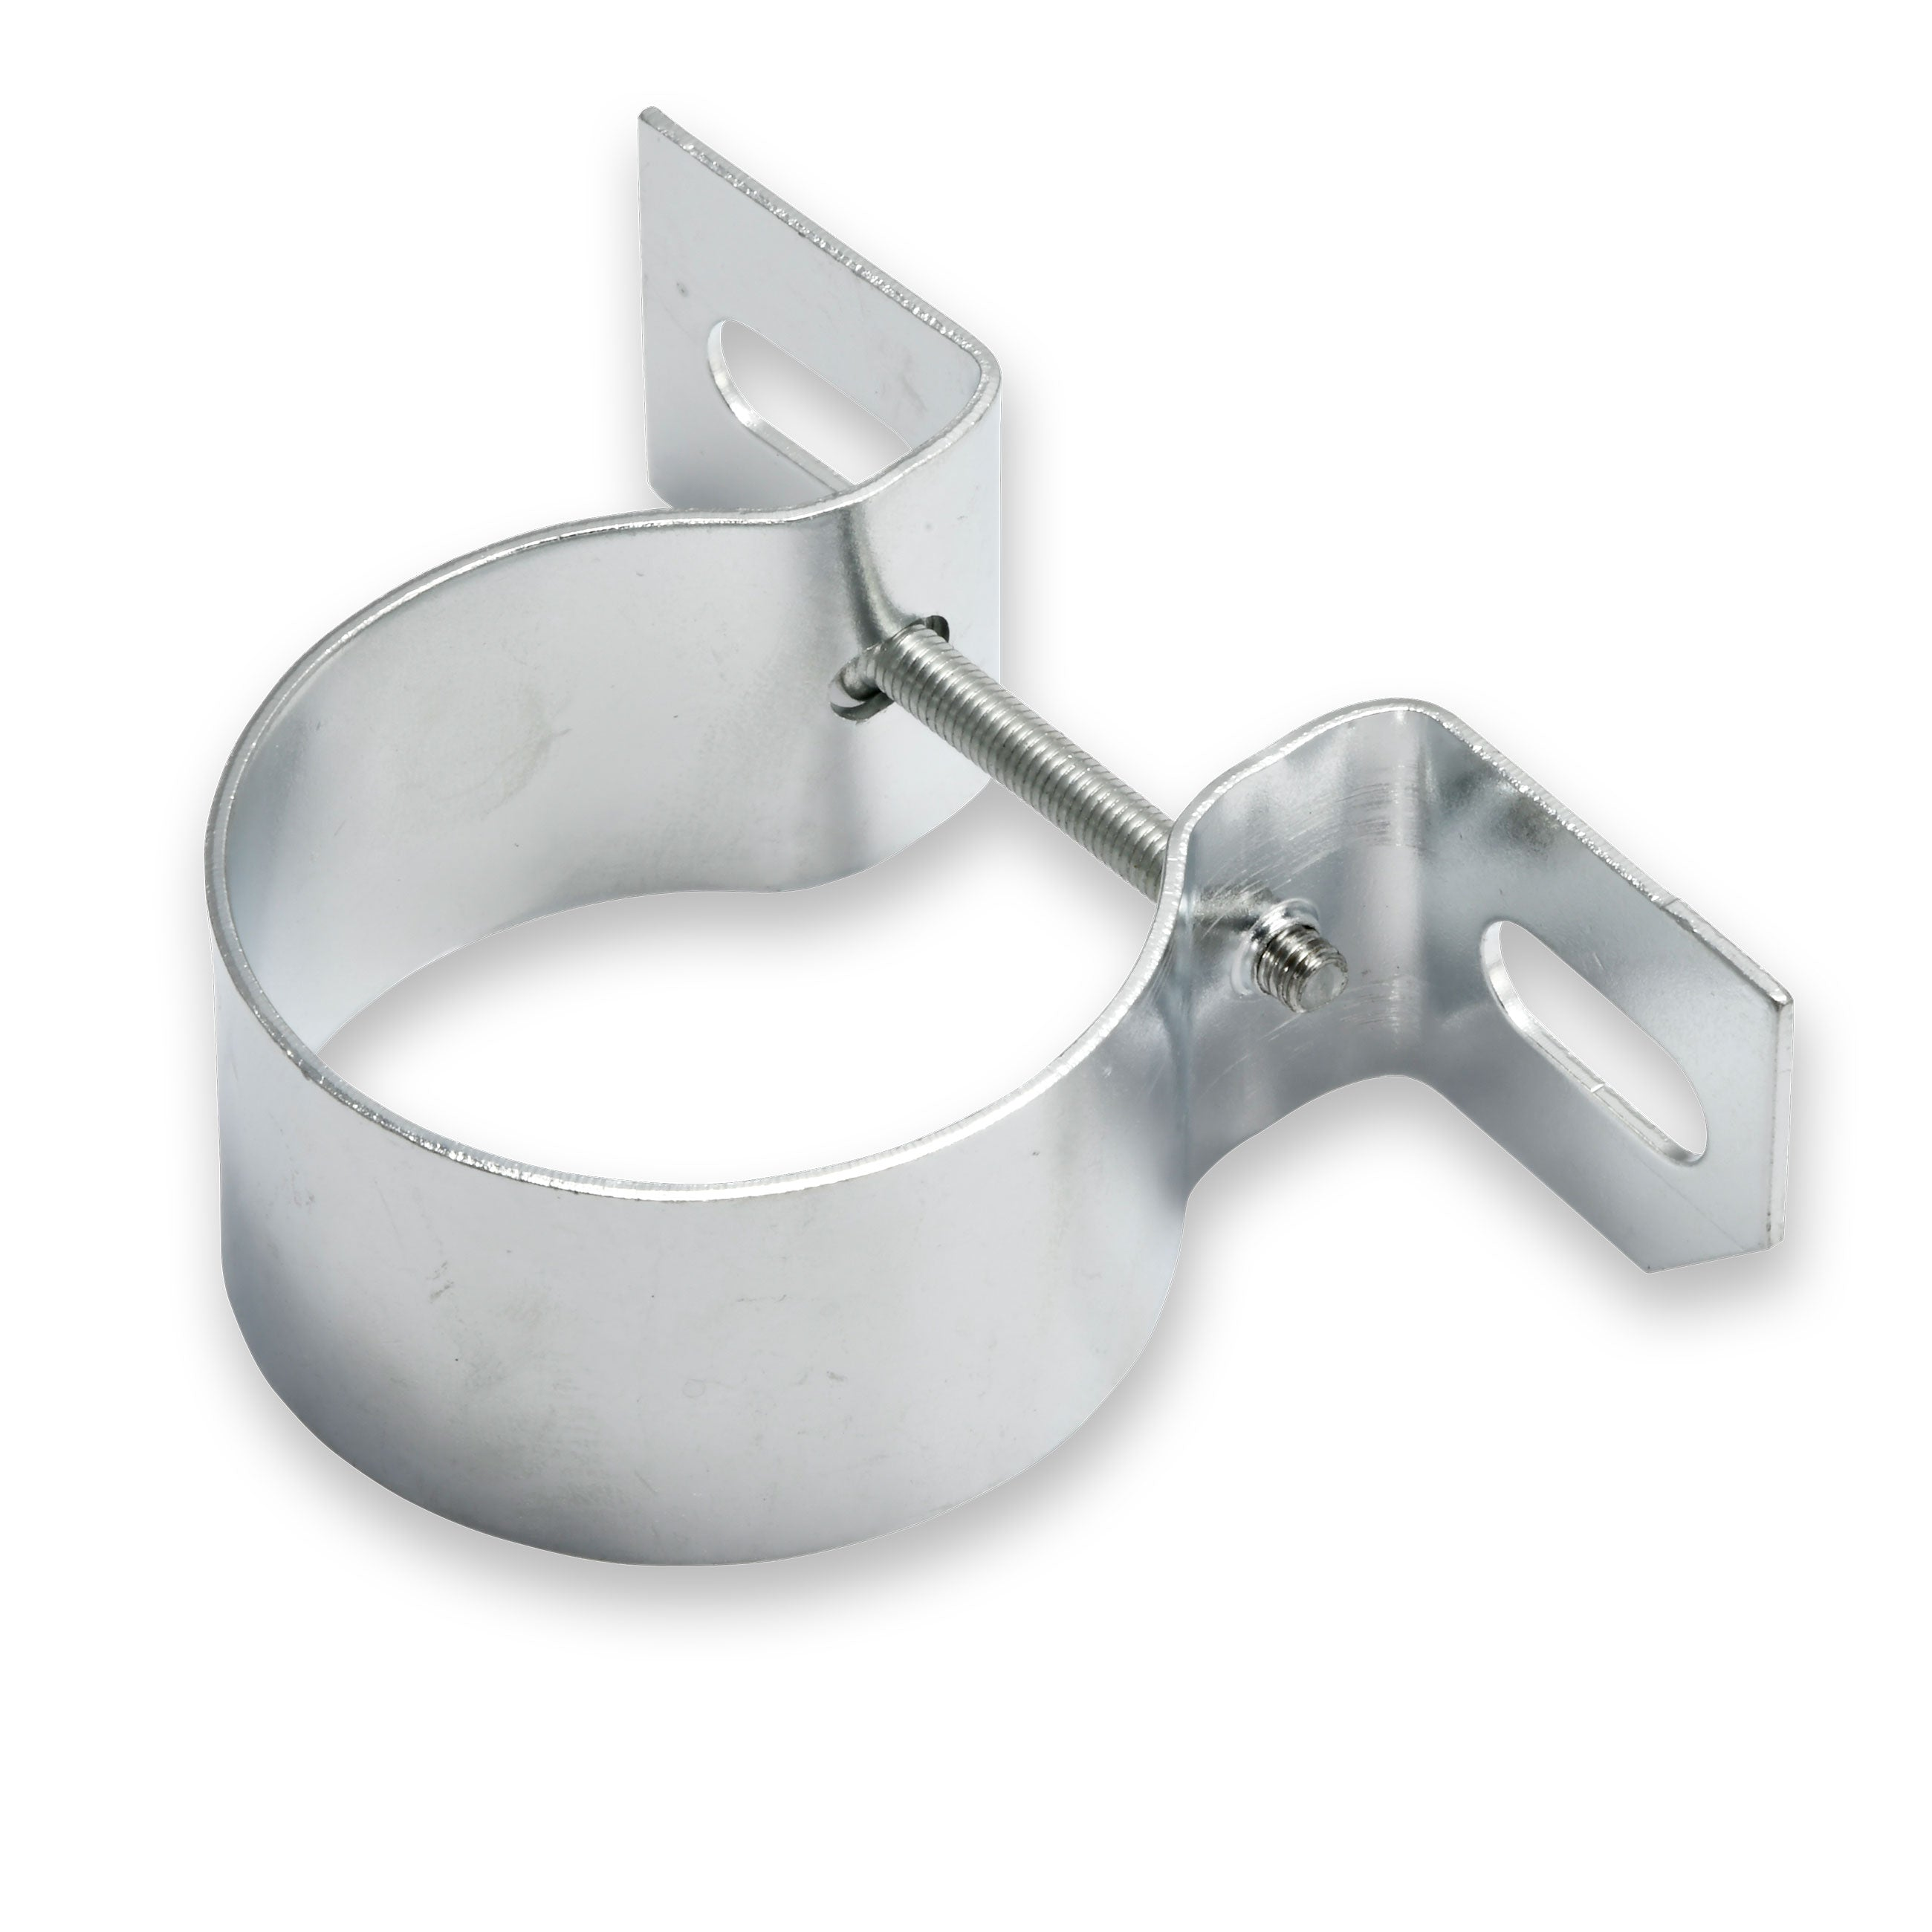 PerTronix 10001 Bracket, Coil - Zinc Clear